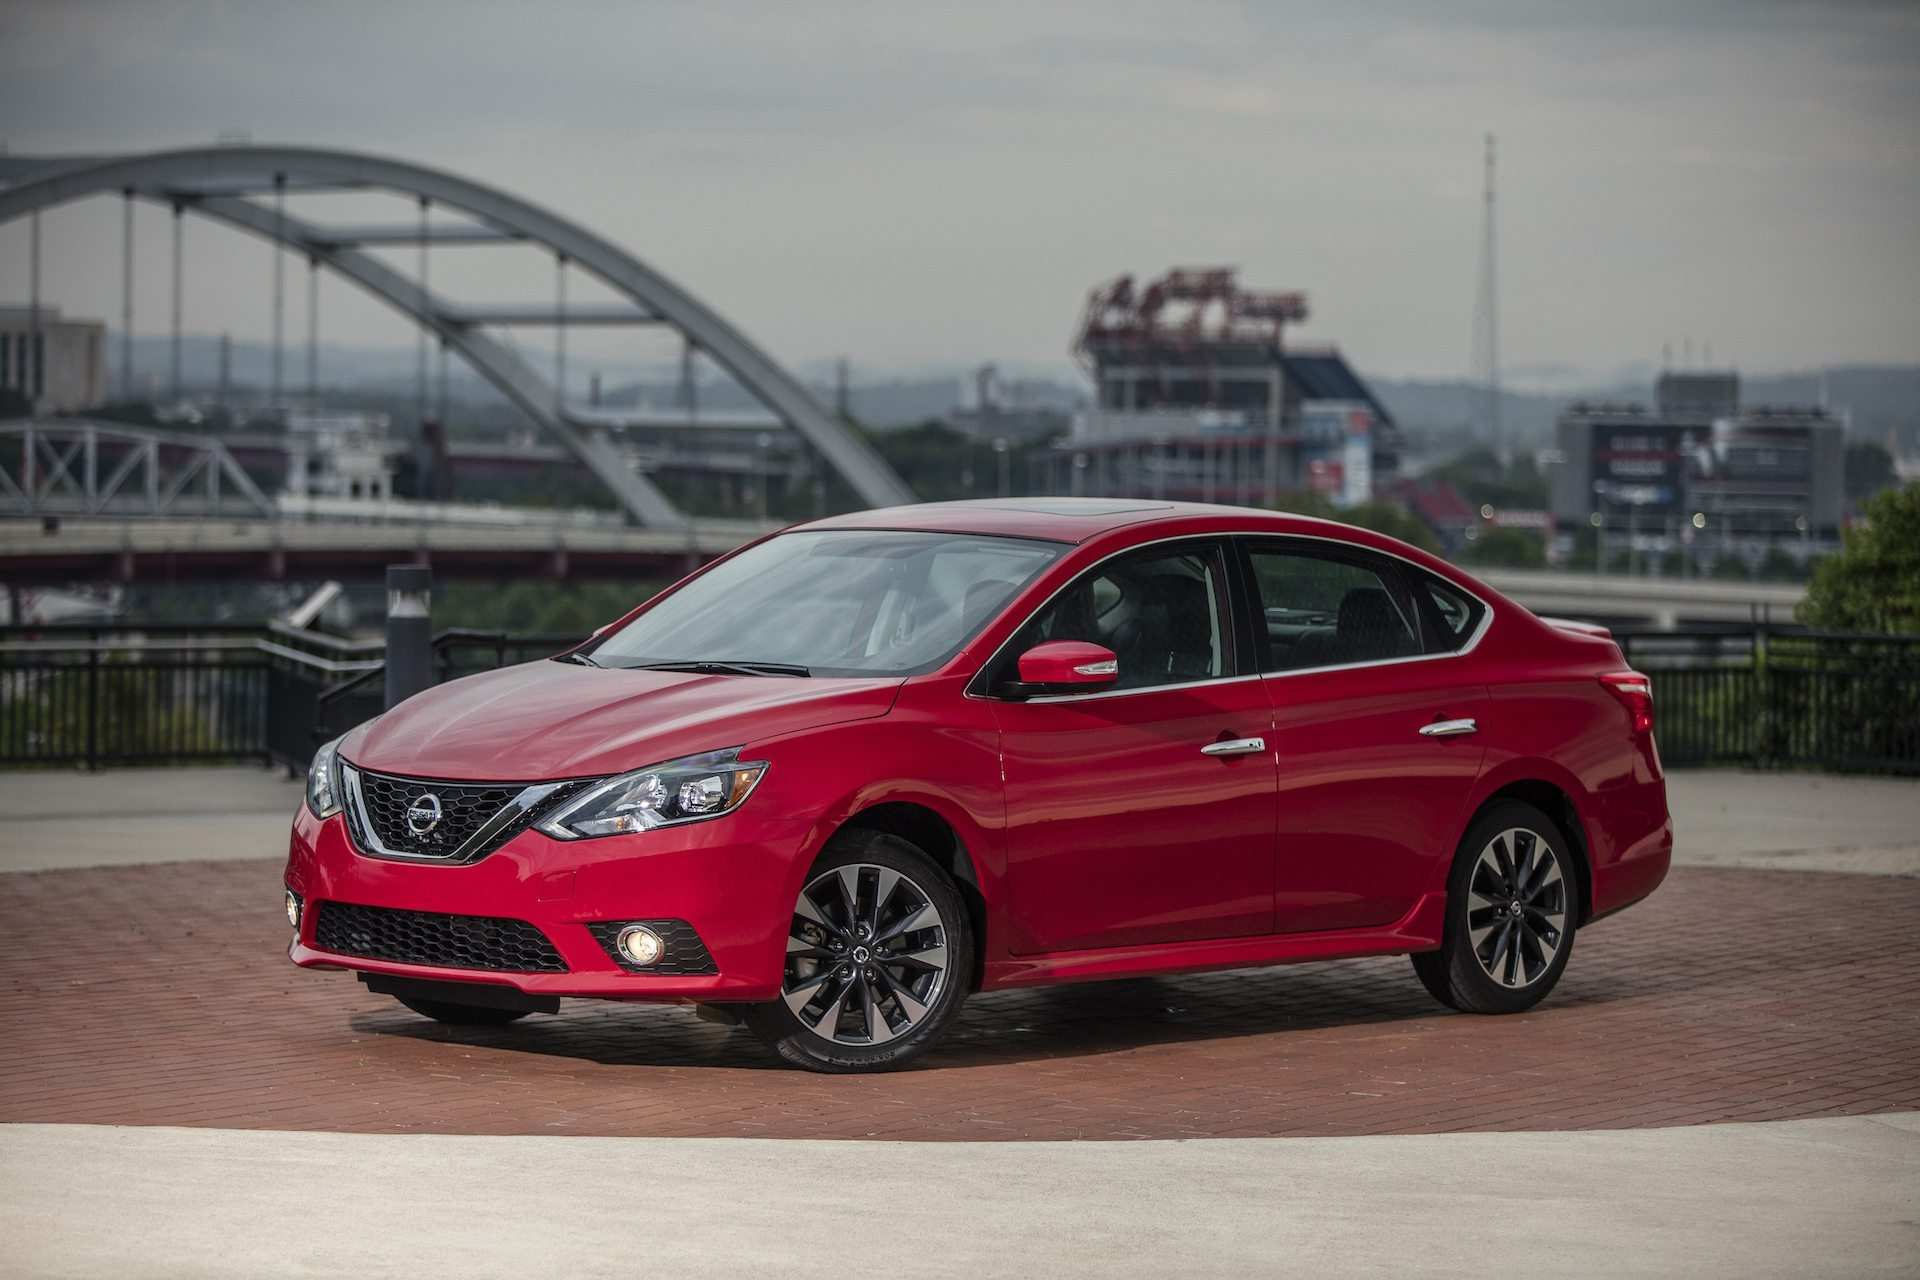 82 A 2020 Nissan Sentra Price Design And Review